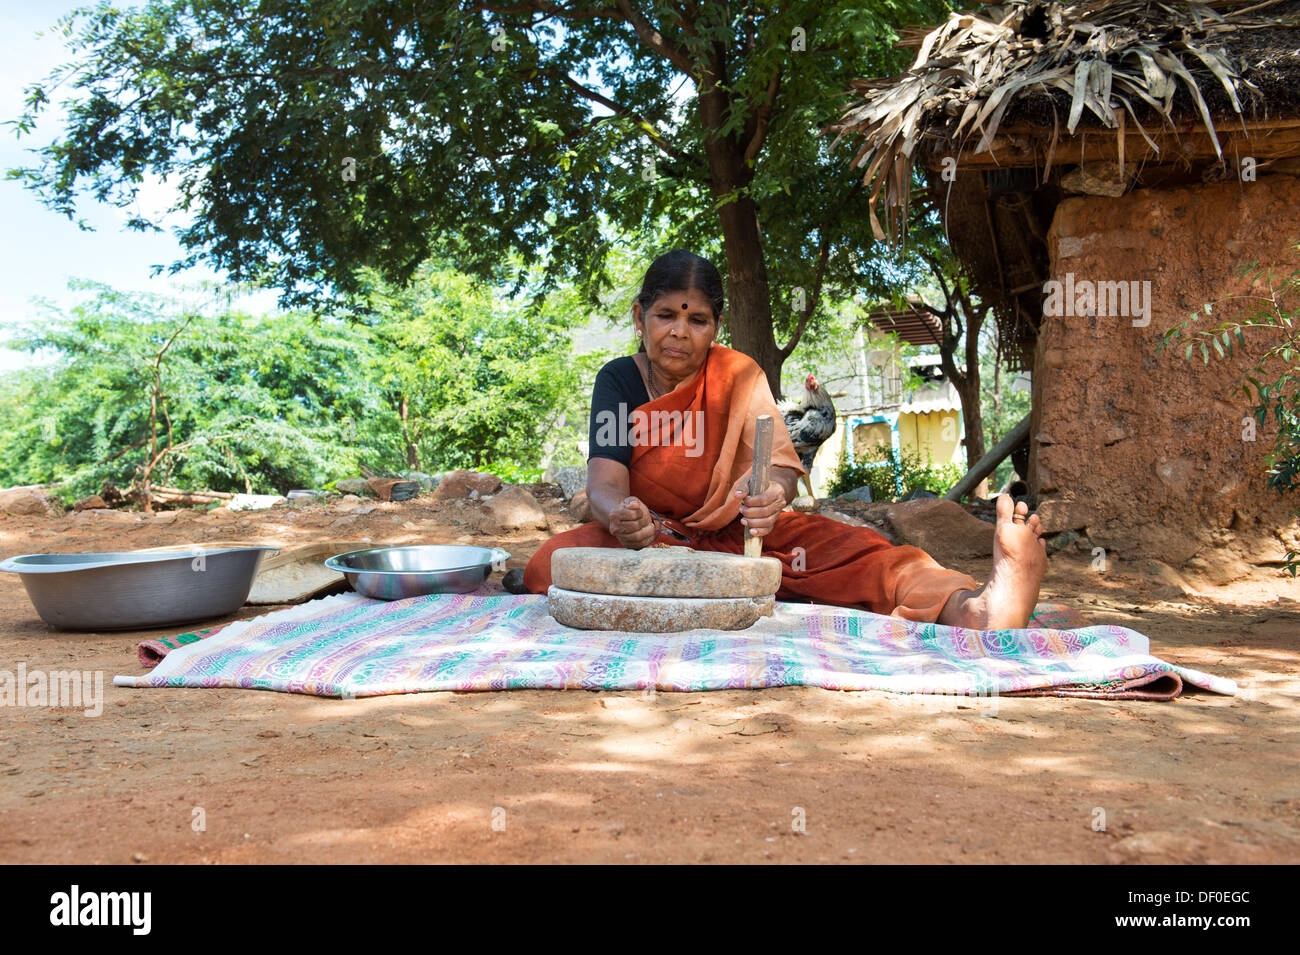 Rural Indian village woman using Quern stones to grind Finger Millet seed / Ragi seeds into Ragi flour. Andhra Pradesh. India - Stock Image